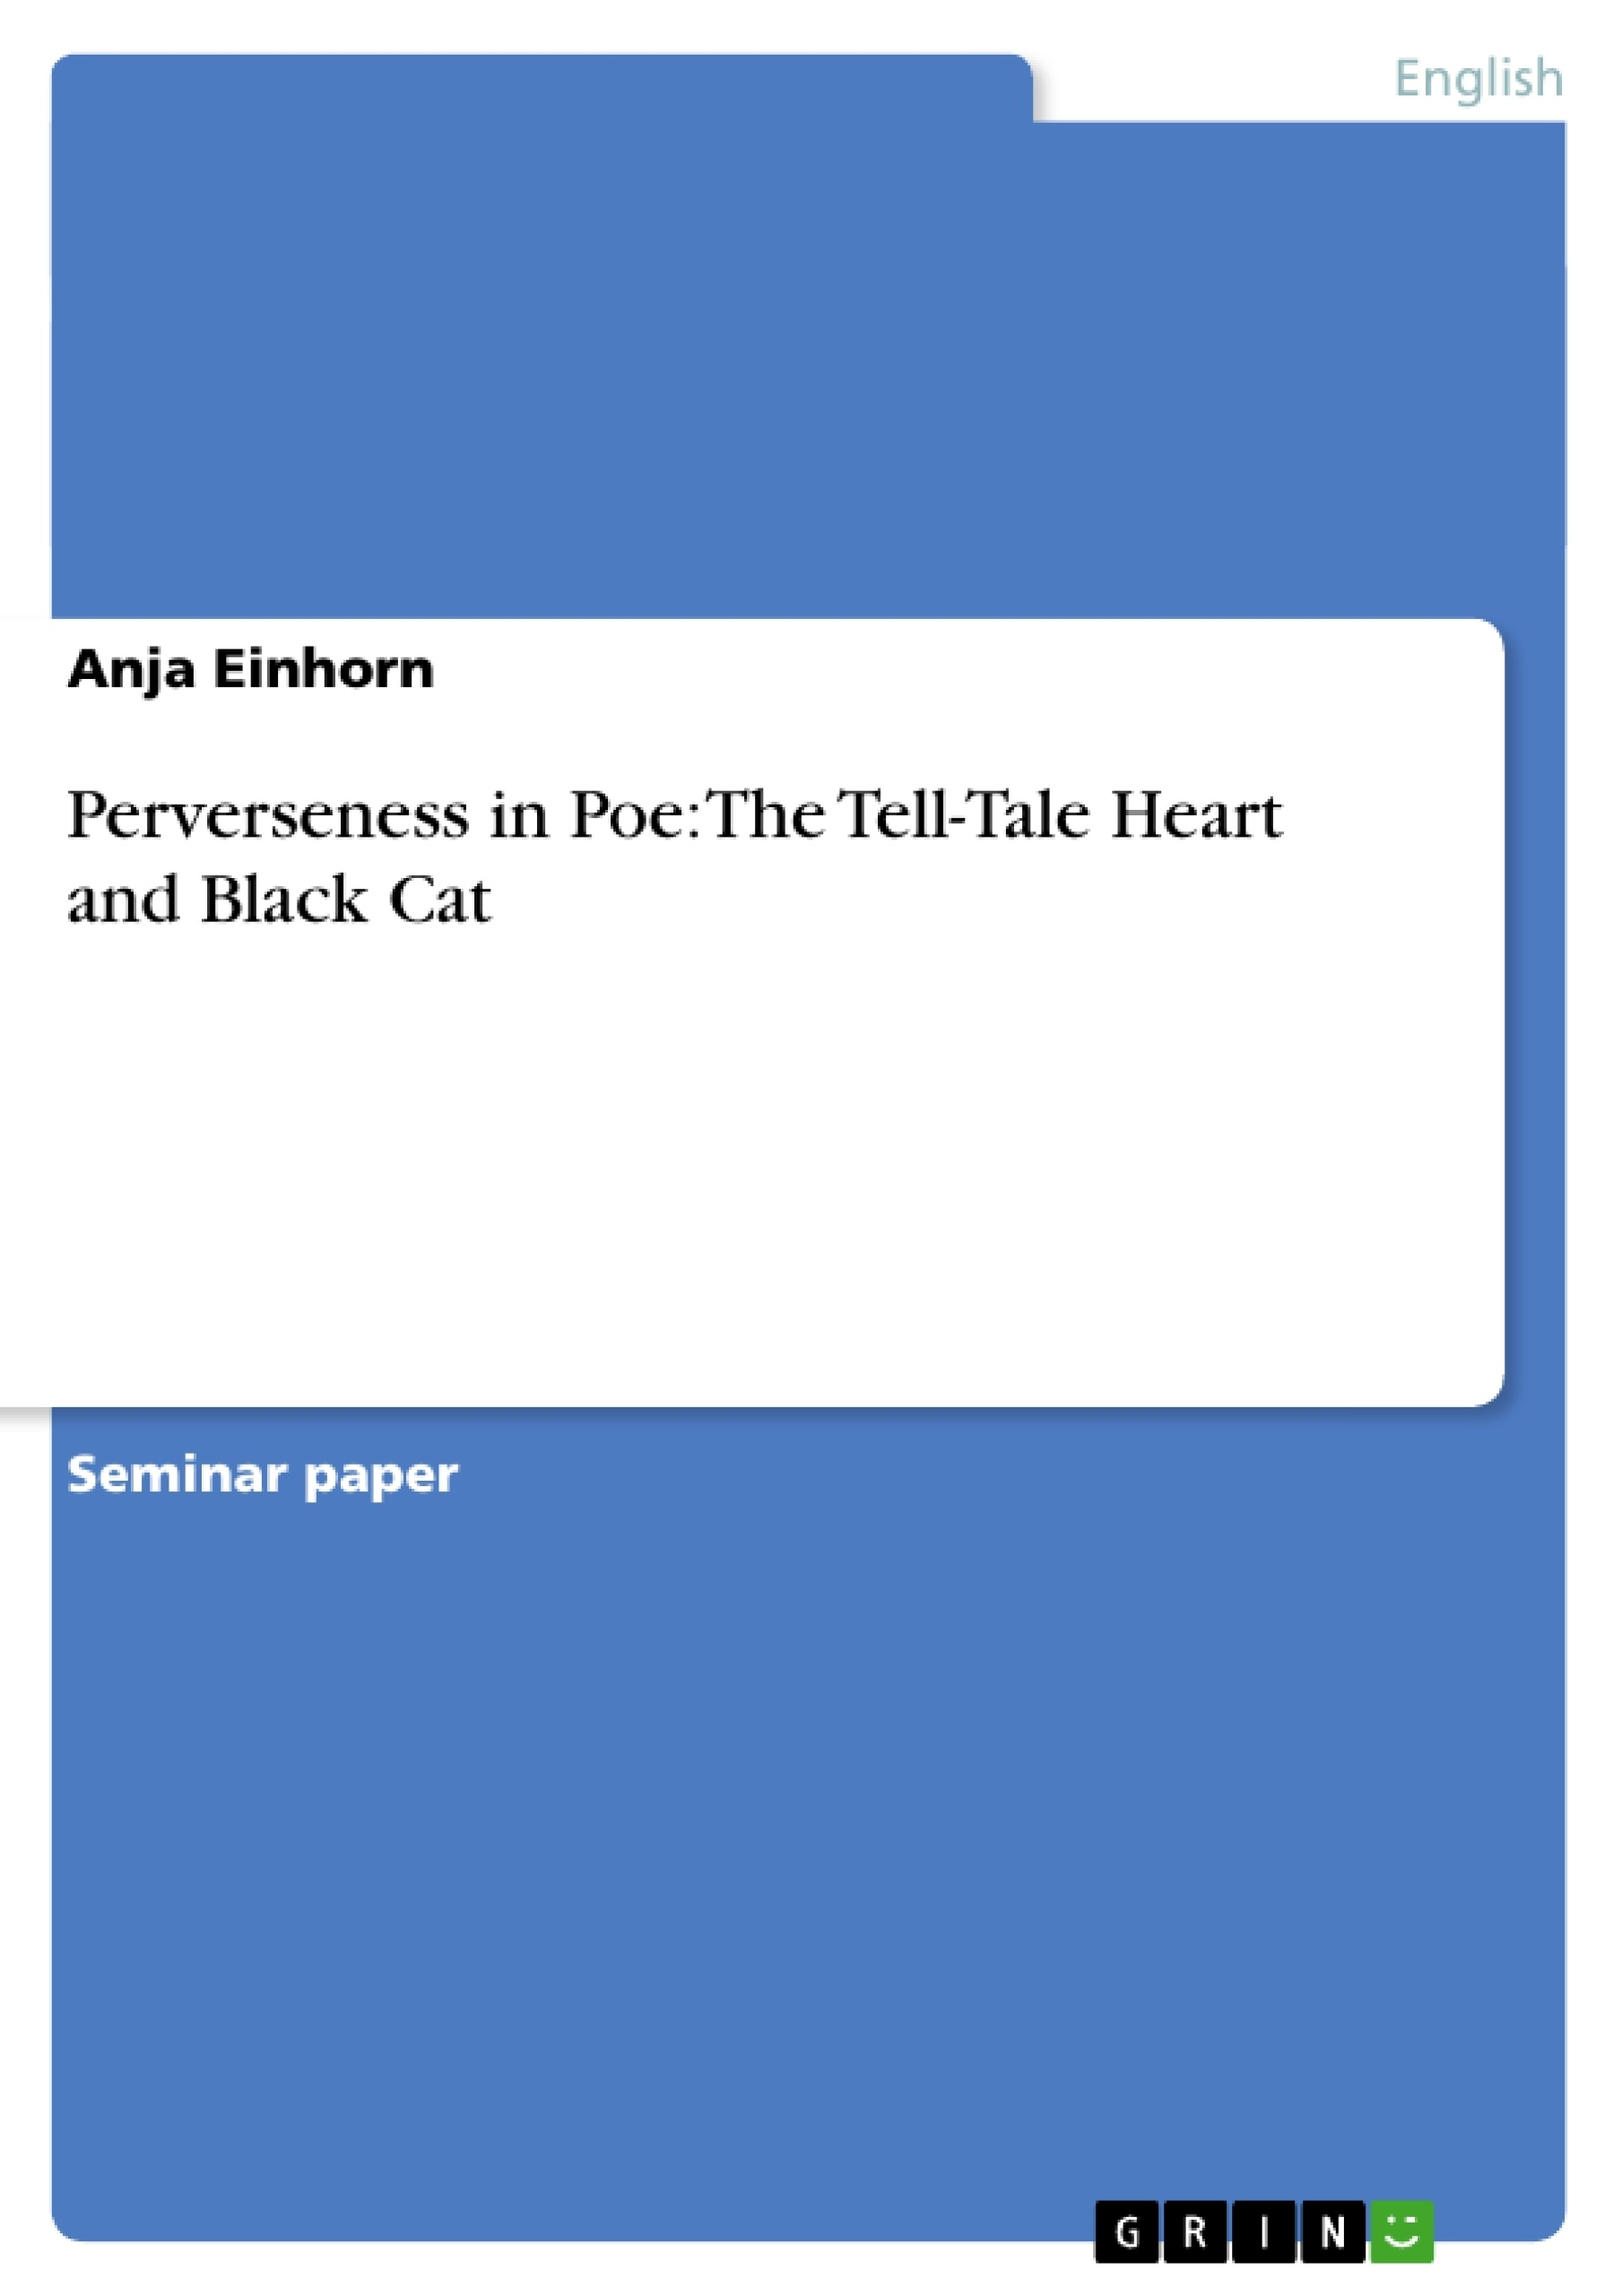 perverseness in poe the tell tale heart and black cat publish  upload your own papers earn money and win an iphone x